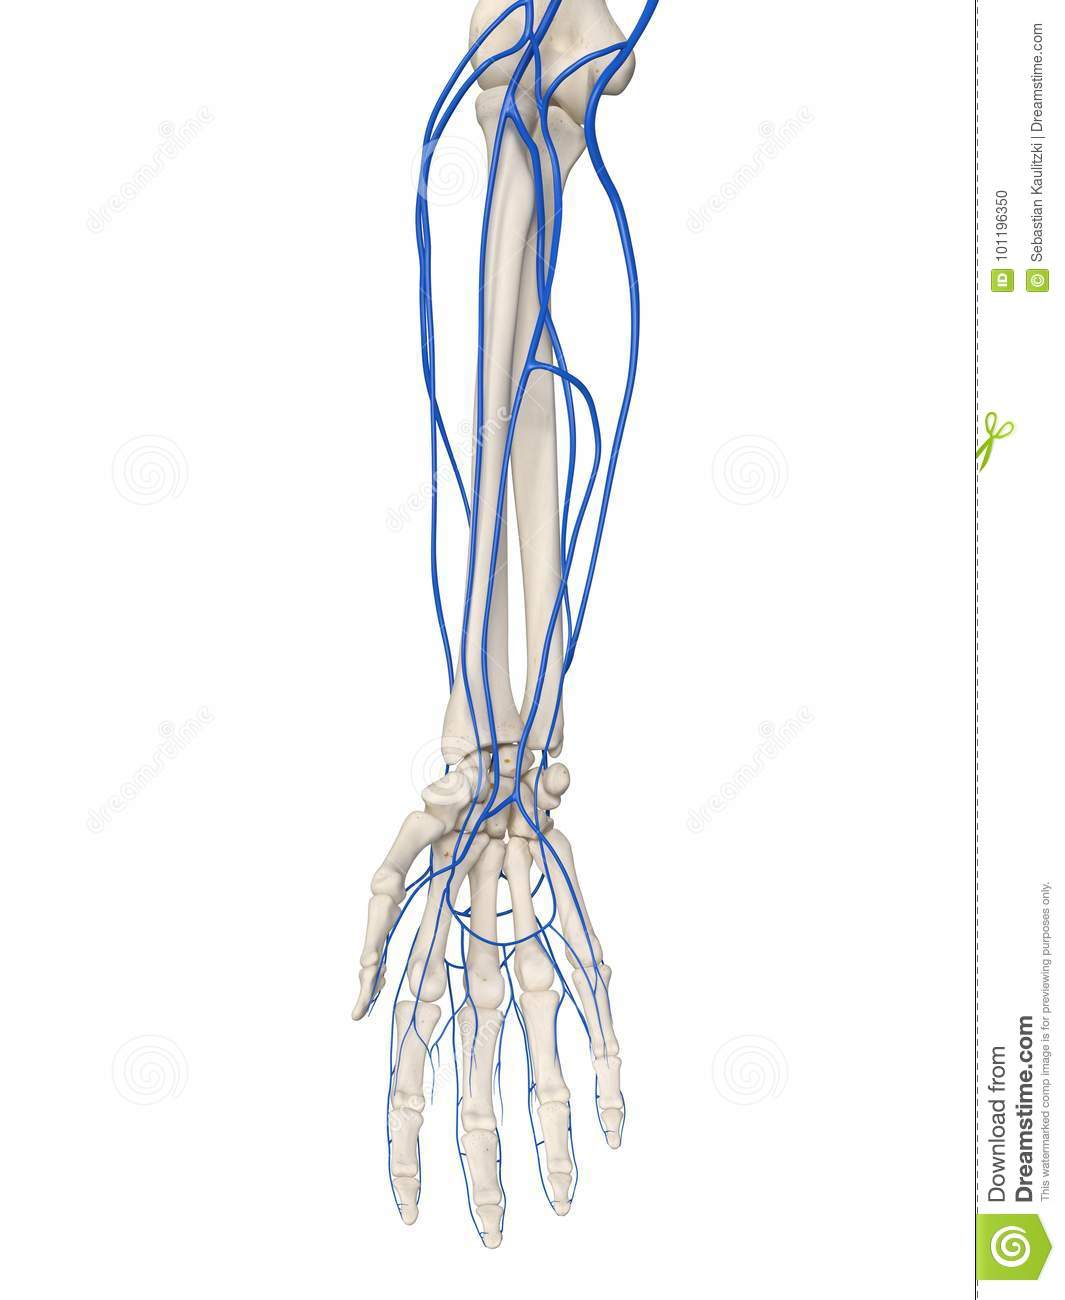 The Arm Veins Stock Illustration Illustration Of Hand 101196350